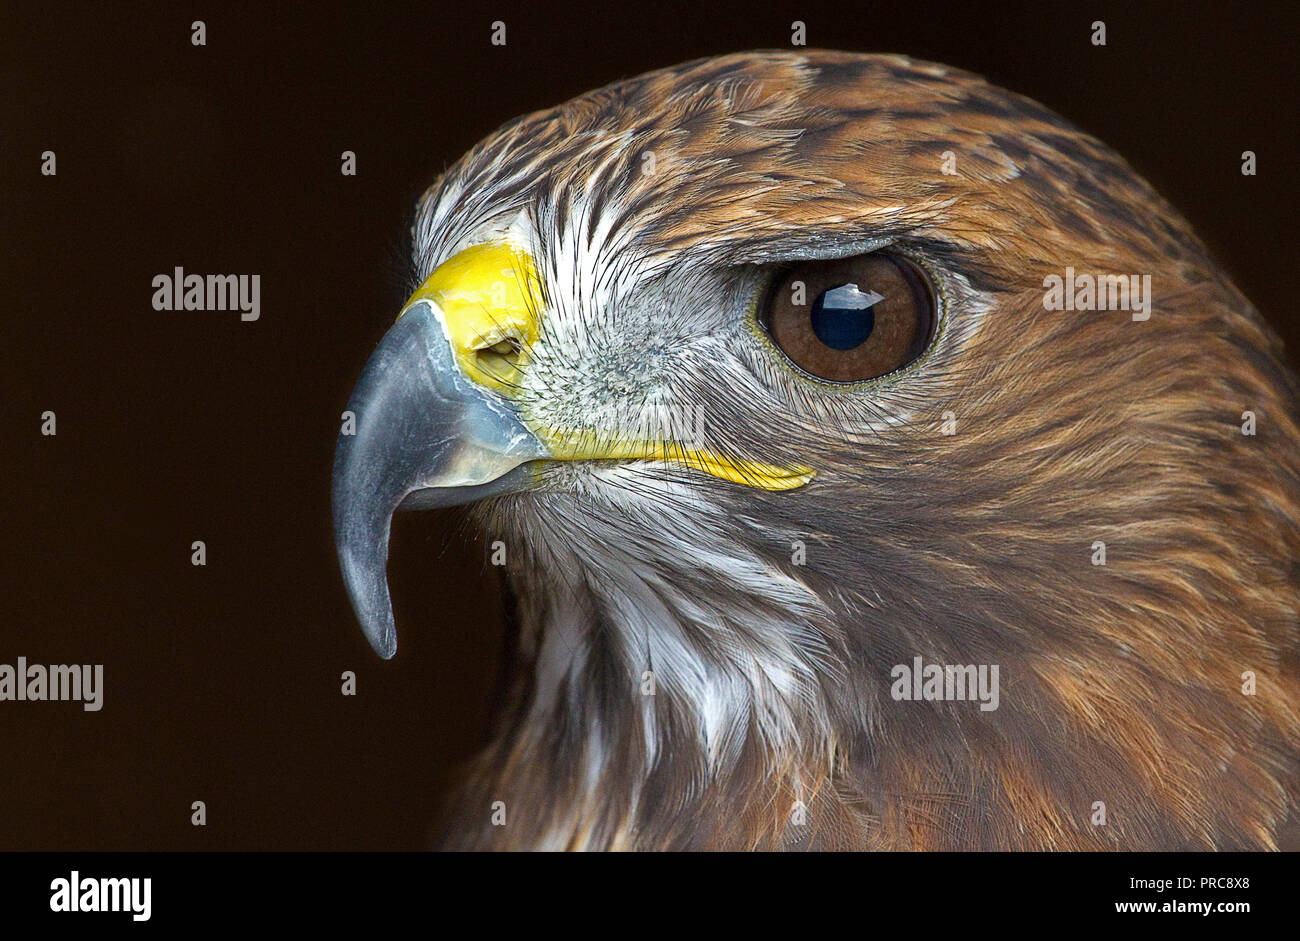 Eagle Eyes - Stock Image